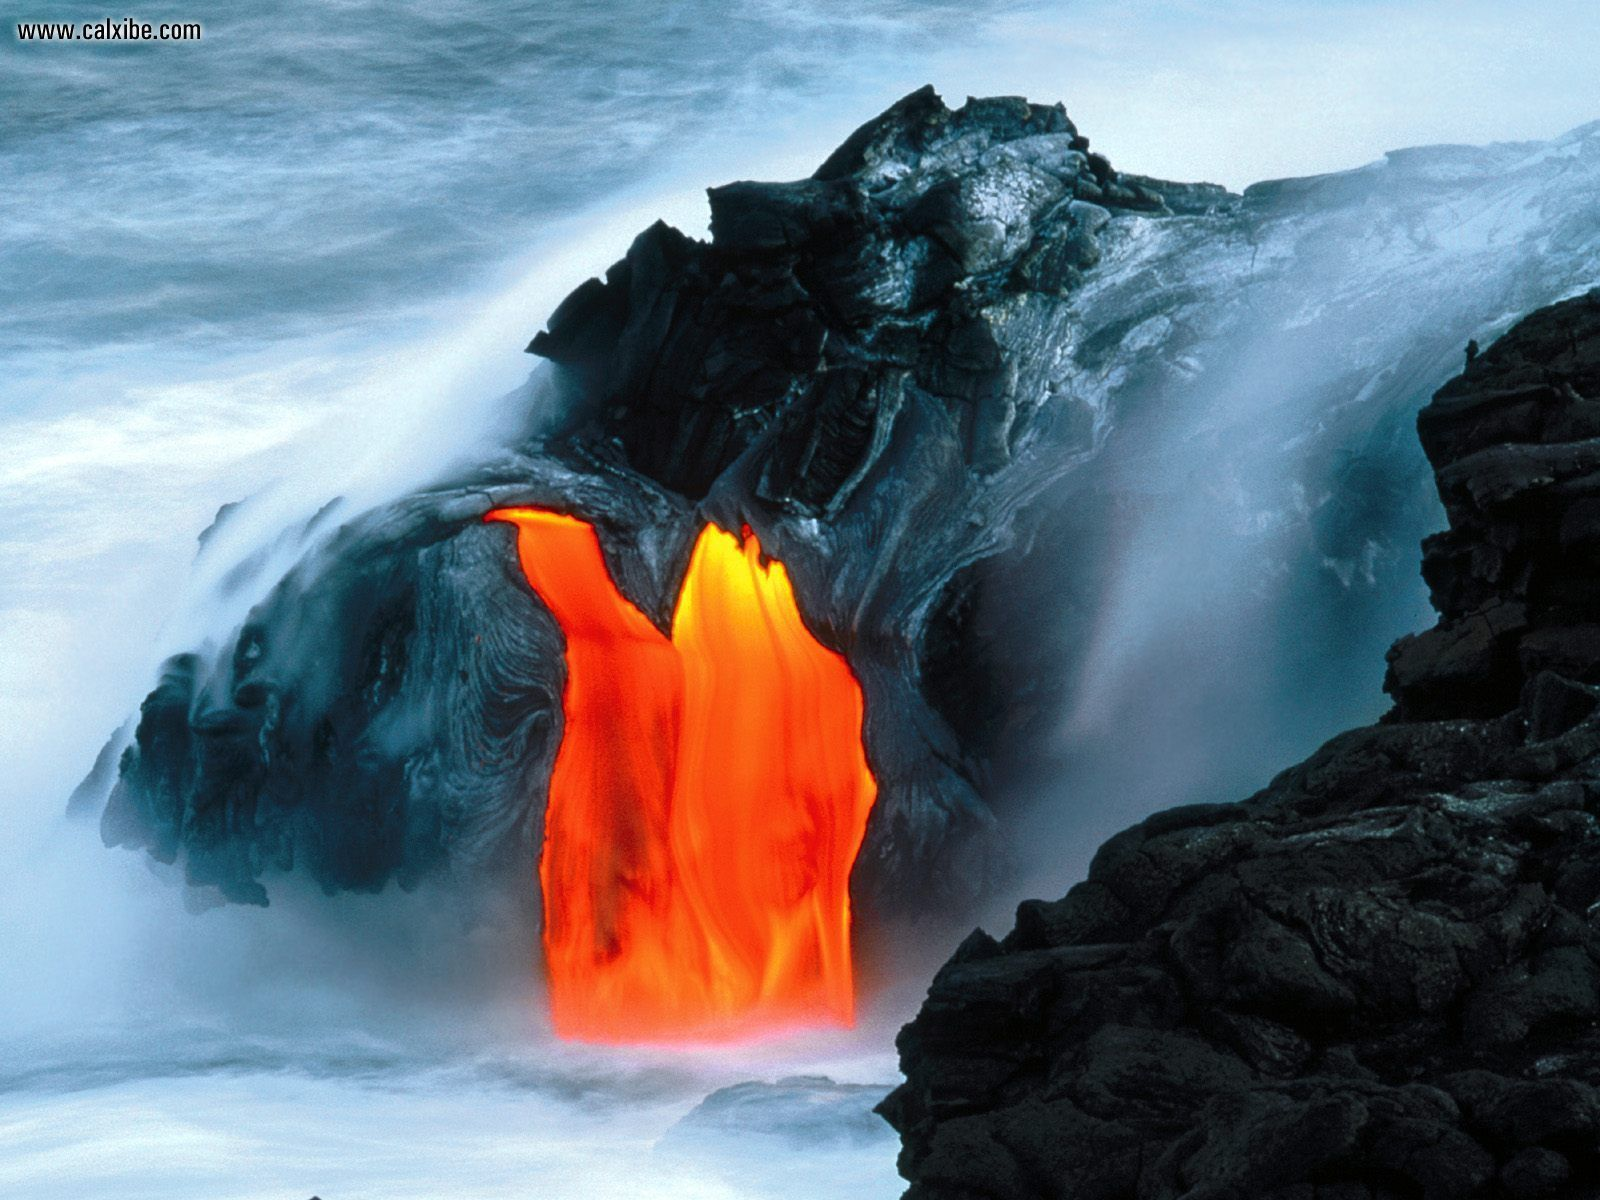 Nature Lava Flow From Kilauea Volcano Hawaii picture nr 17398 1600x1200